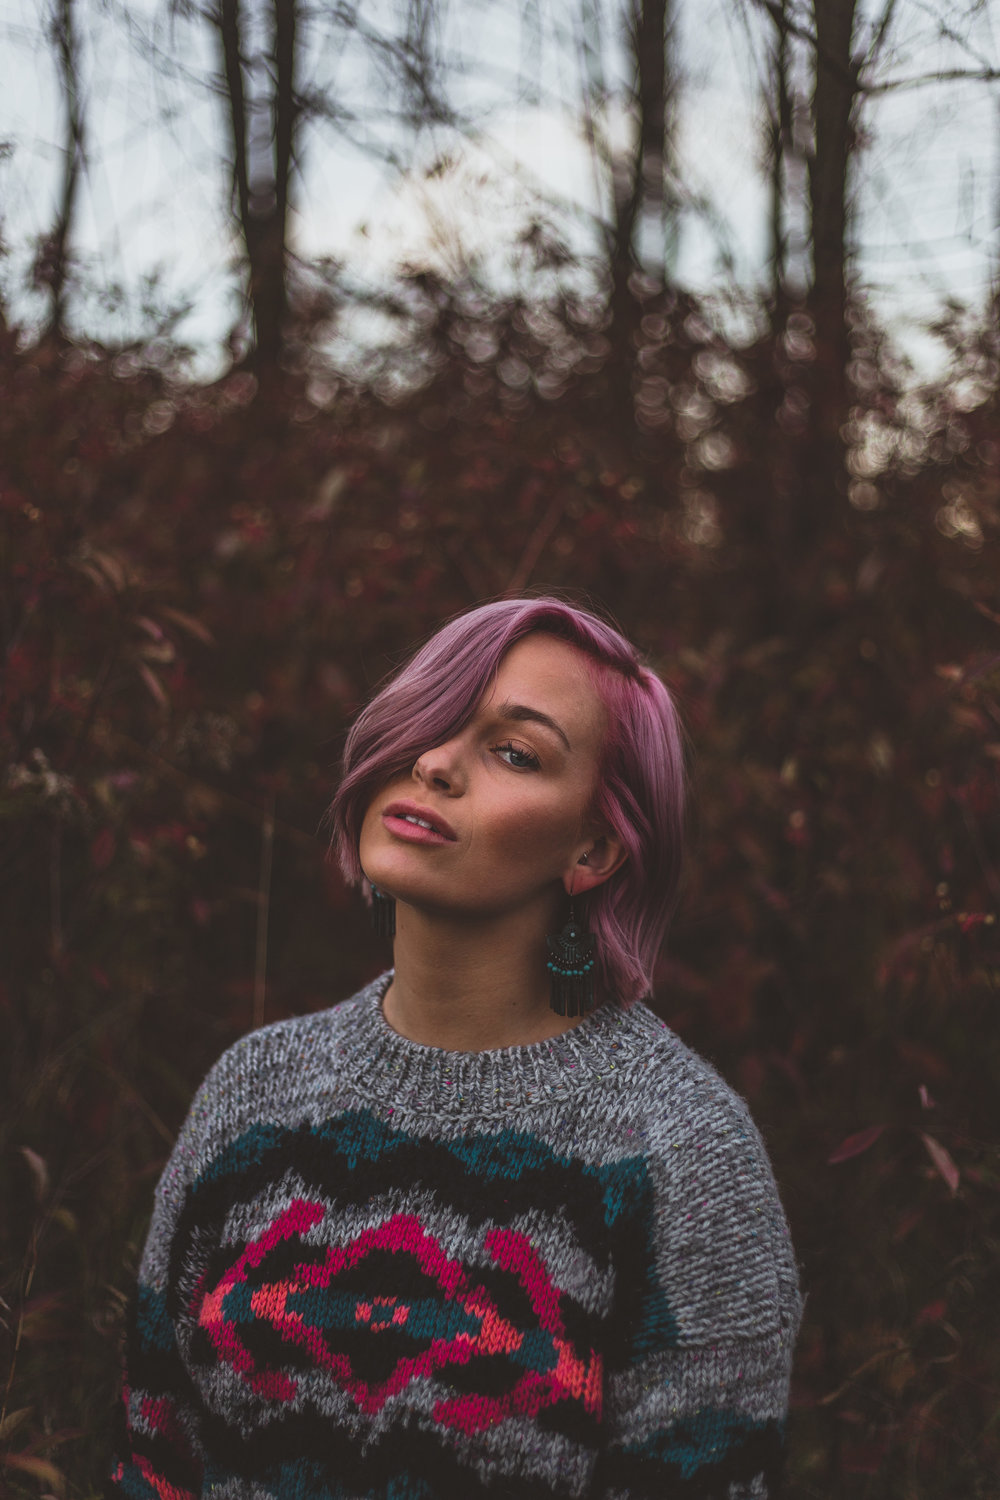 Hair Matches Background Leaves.jpg